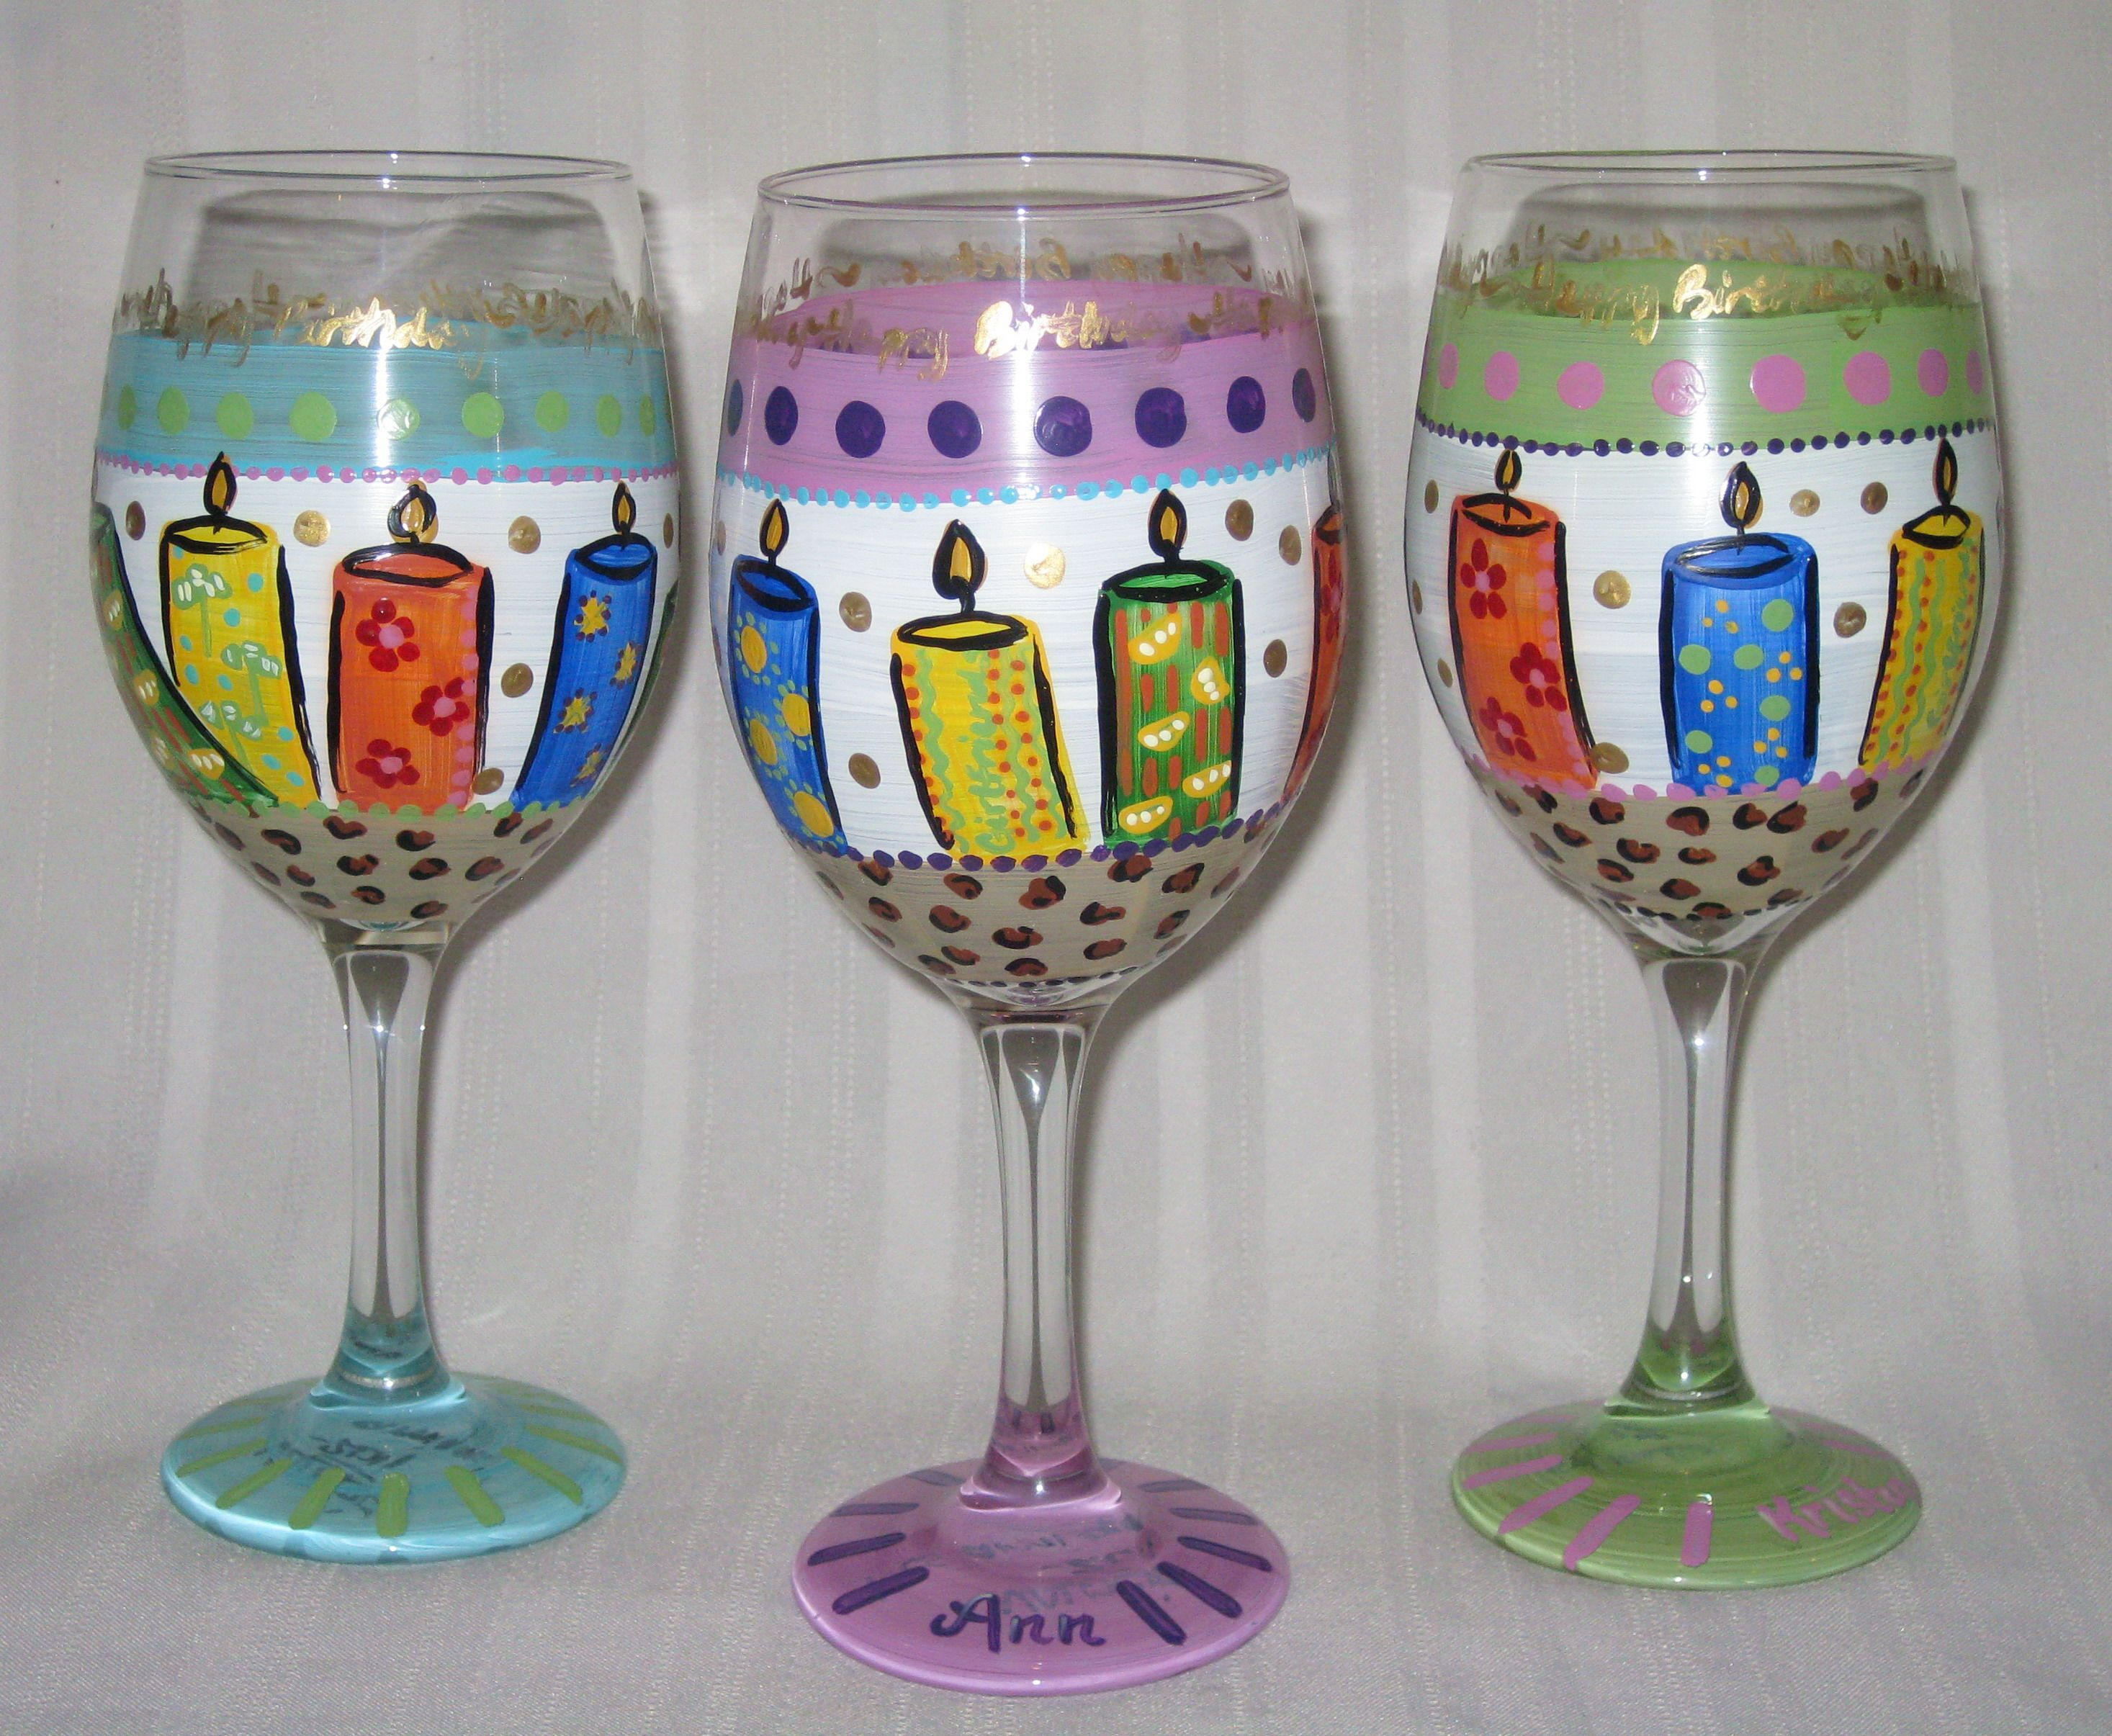 bottoms up...celebrate your birthday with personalized glassware, any theme  can be